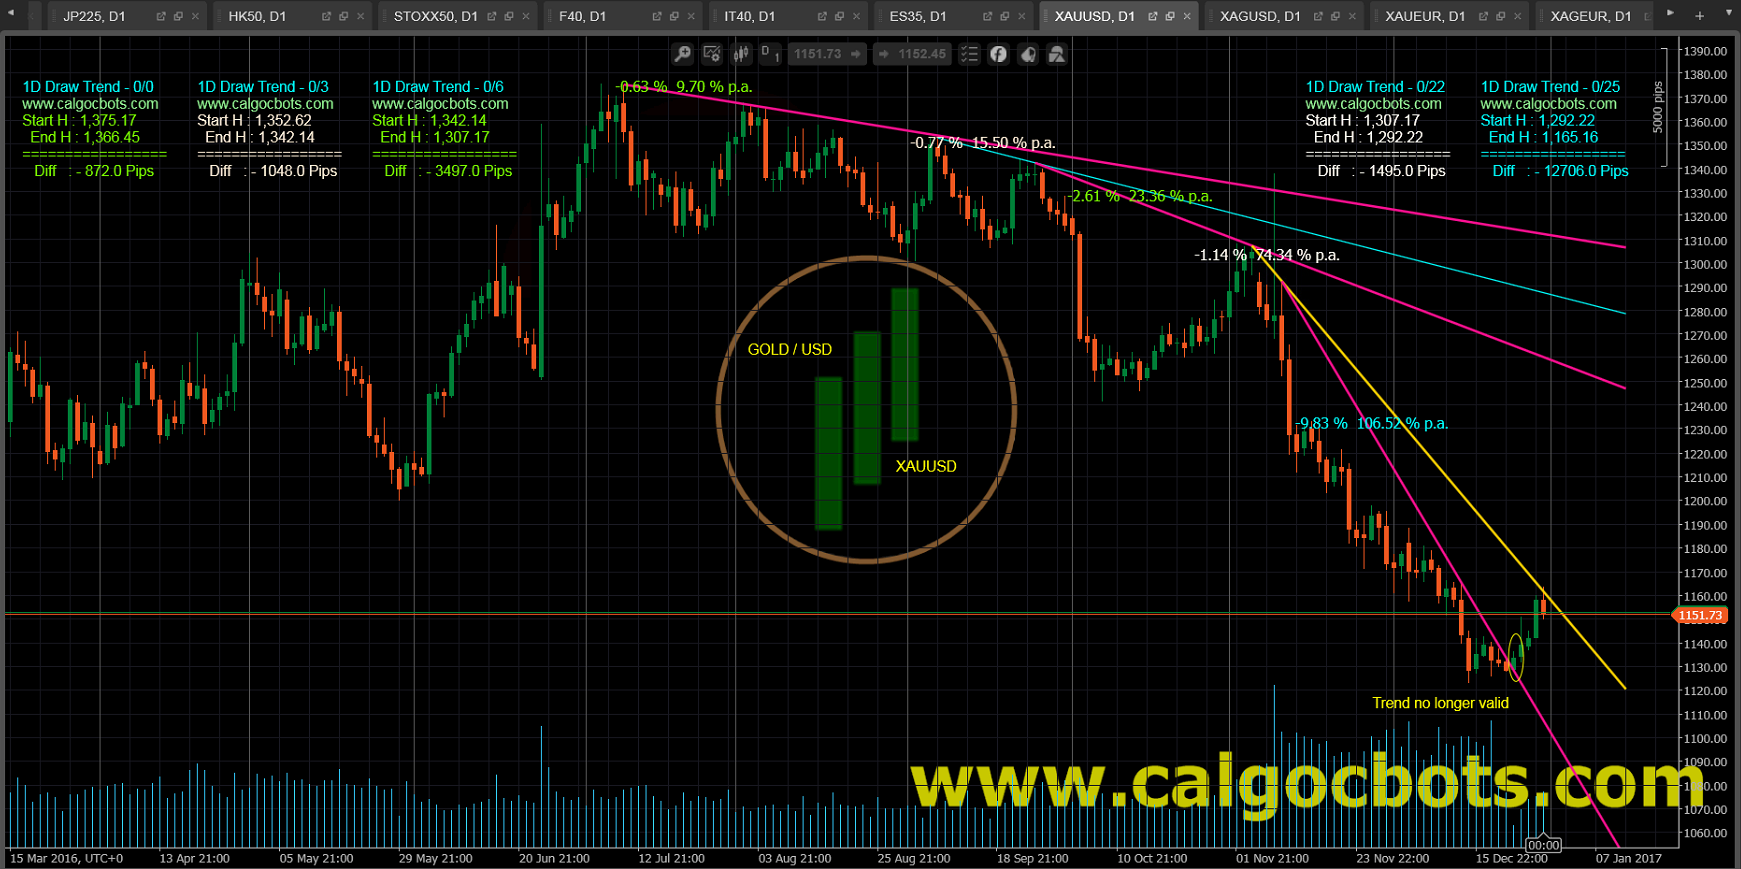 1D Draw Trend - cAlgo and cTrader Indicator - Gold USD Spot - XAUUSD Daily Chart - 004